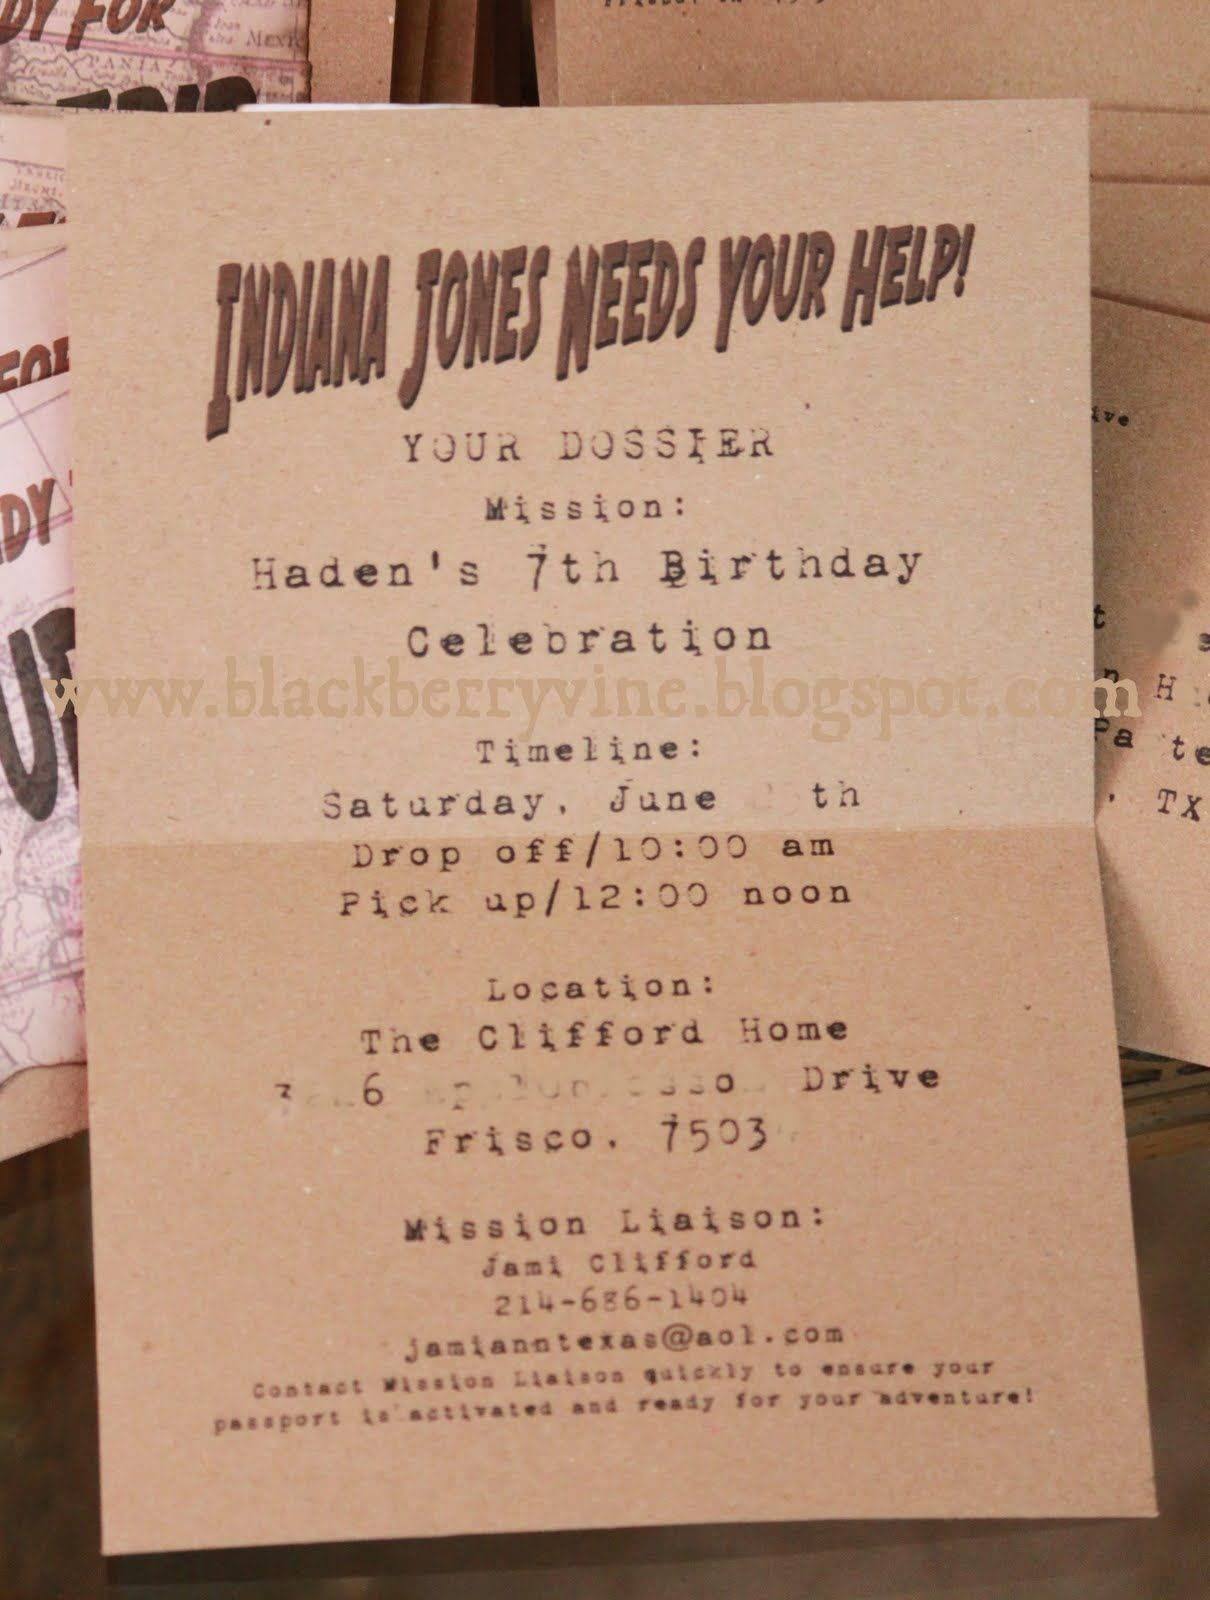 indianjones birthday party invitations%0A Indiana Jones Treasure Hunt Ideas  Great for an Indiana Jones theme party     Indiana Jones   Pinterest   Indiana jones  Indiana jones party and Indiana